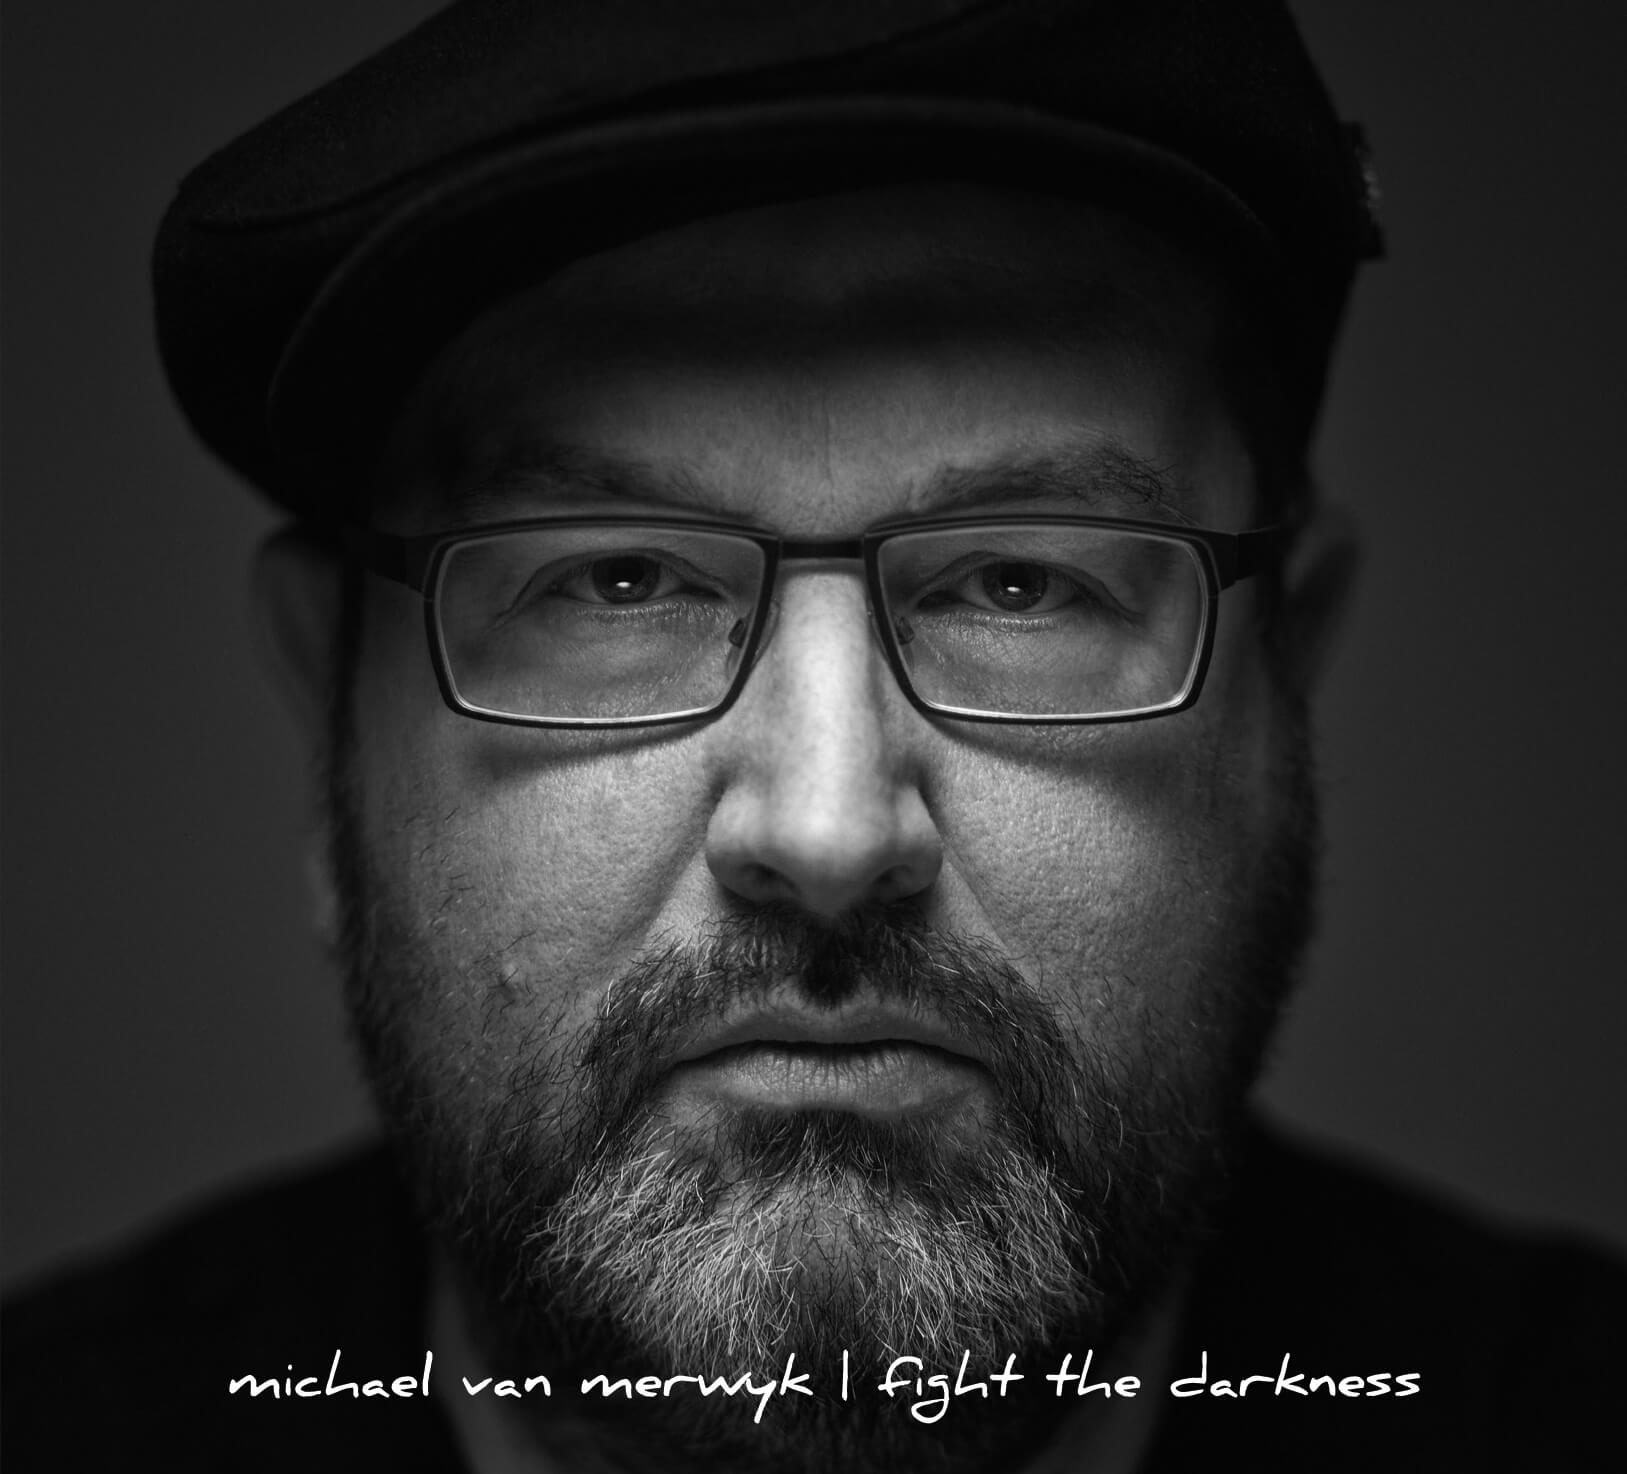 Michael Van Merwyk Fight The Darkness